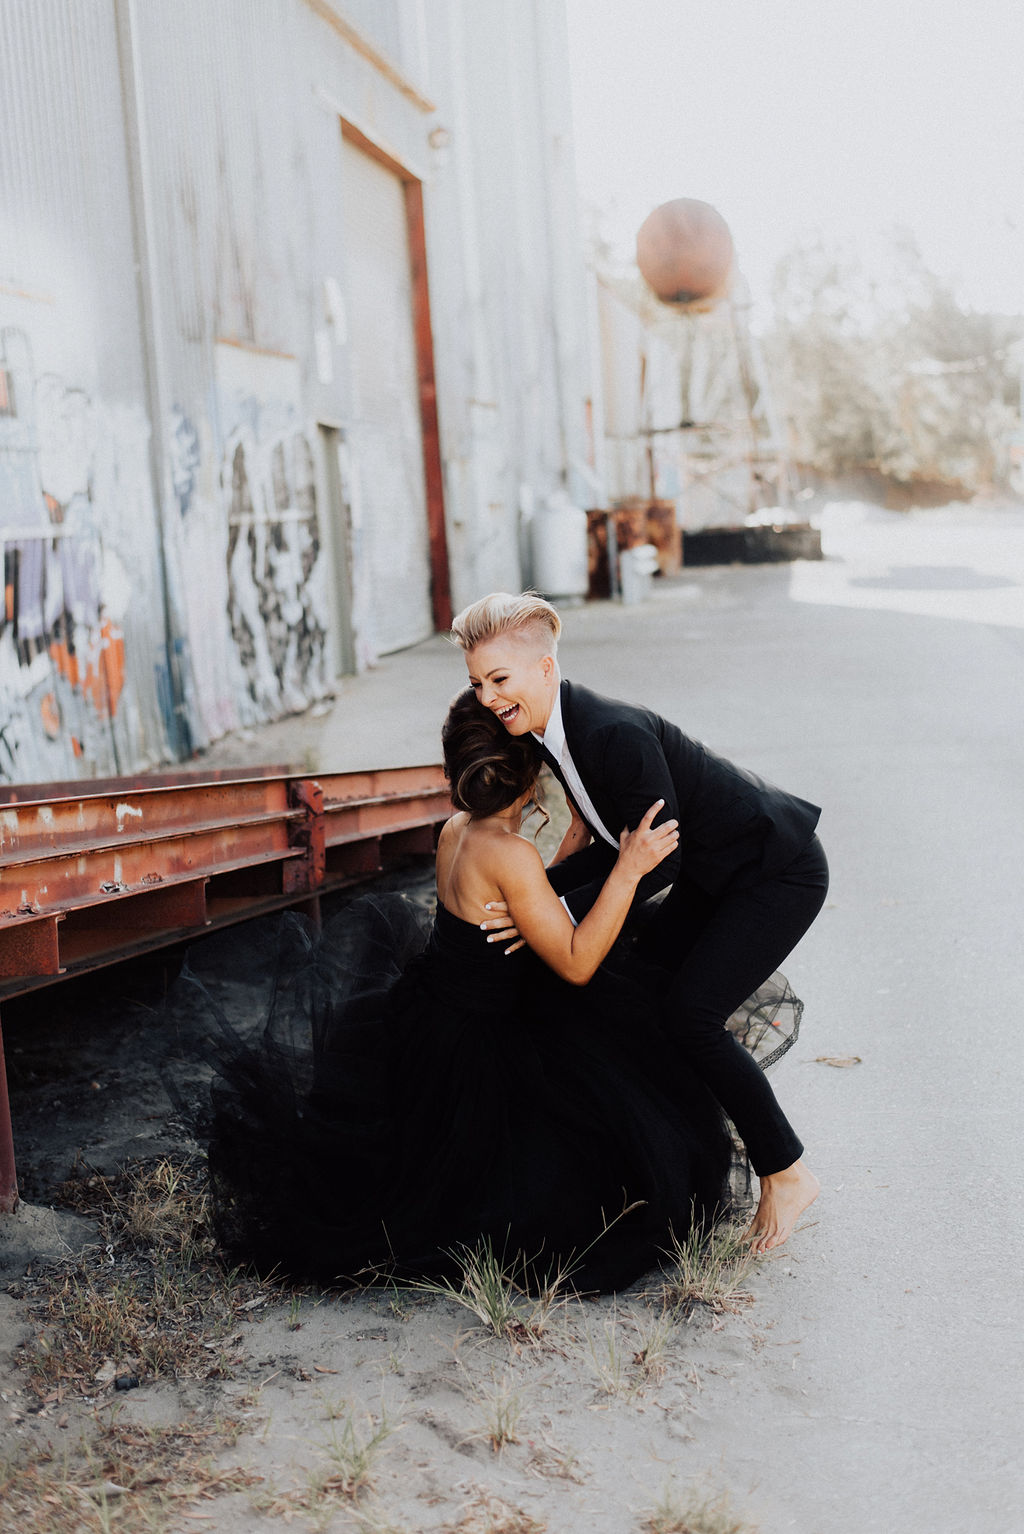 Bird and Boy Photography lesbian gay queer couple black and white tux wedding photos Gold Coast Burleigh Heads Dancing With Her wedding directory magazine